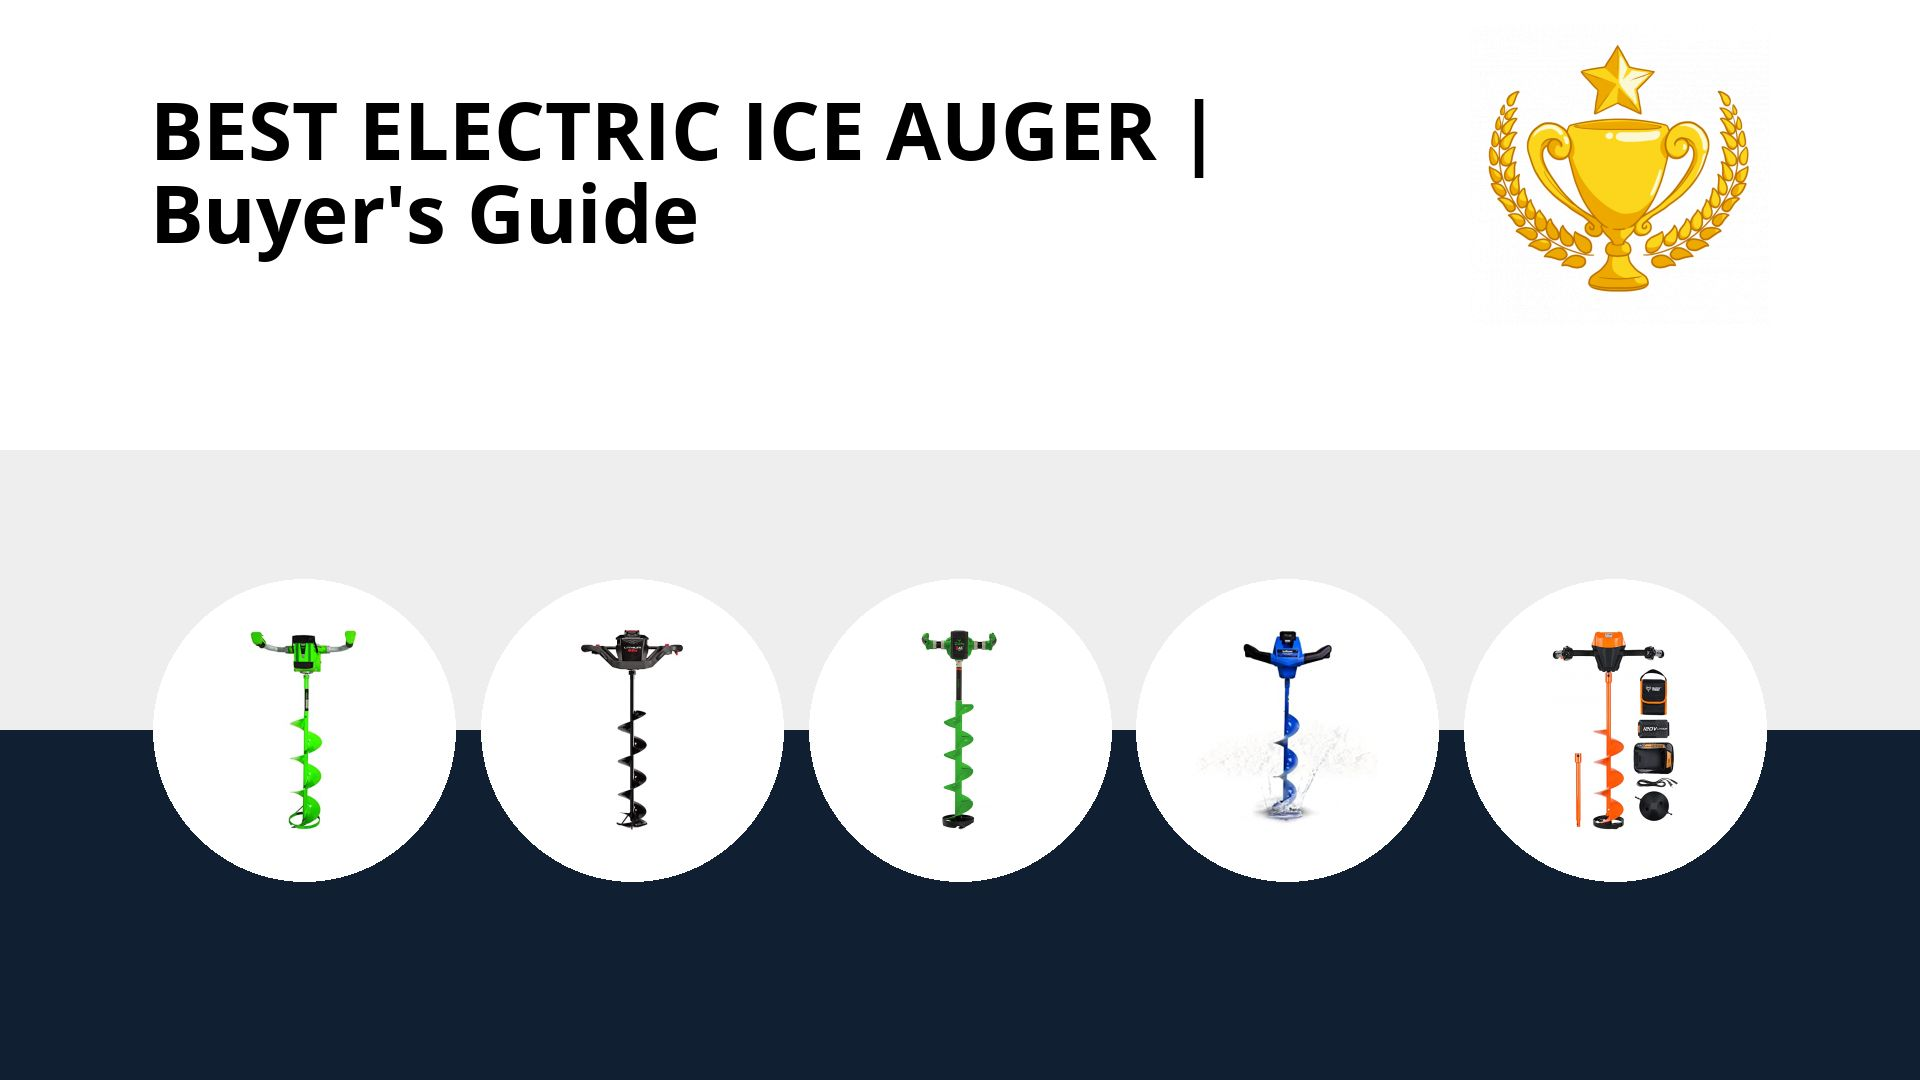 Best Electric Ice Auger: image